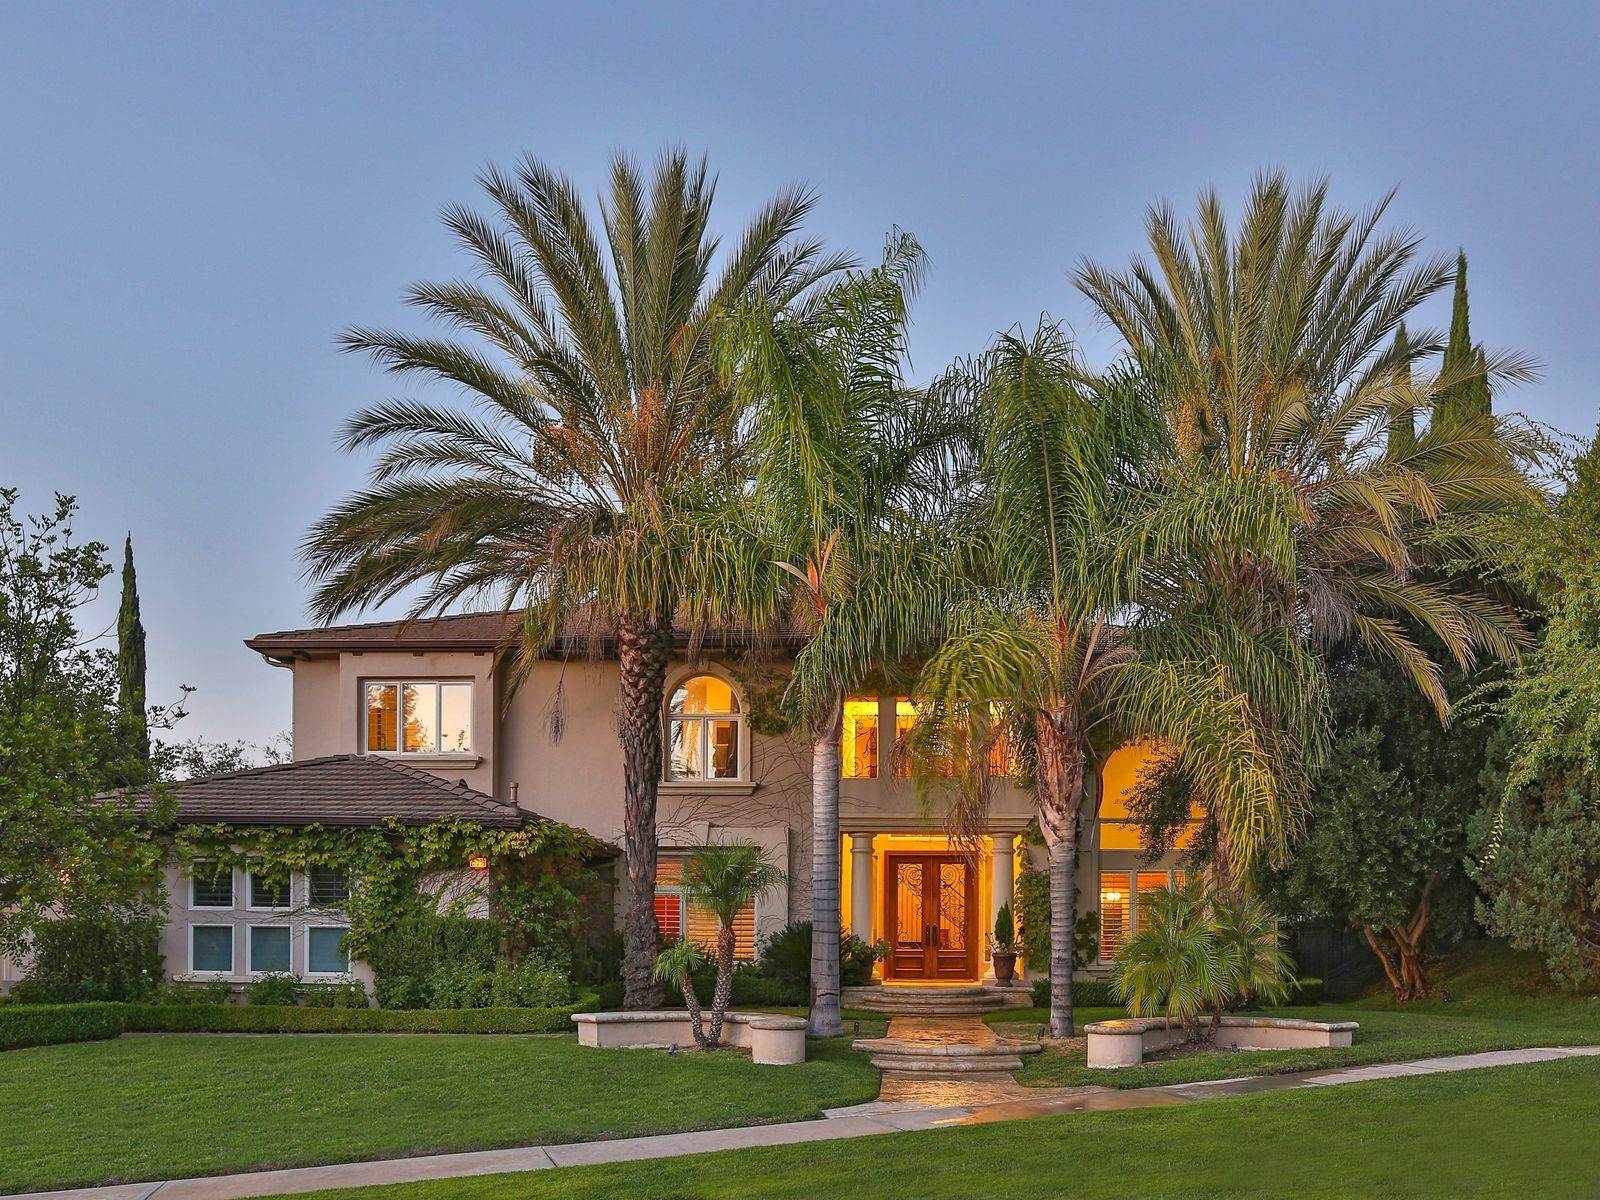 Estate in the Oaks, Calabasas CA Single Family Home - Los Angeles Real Estate